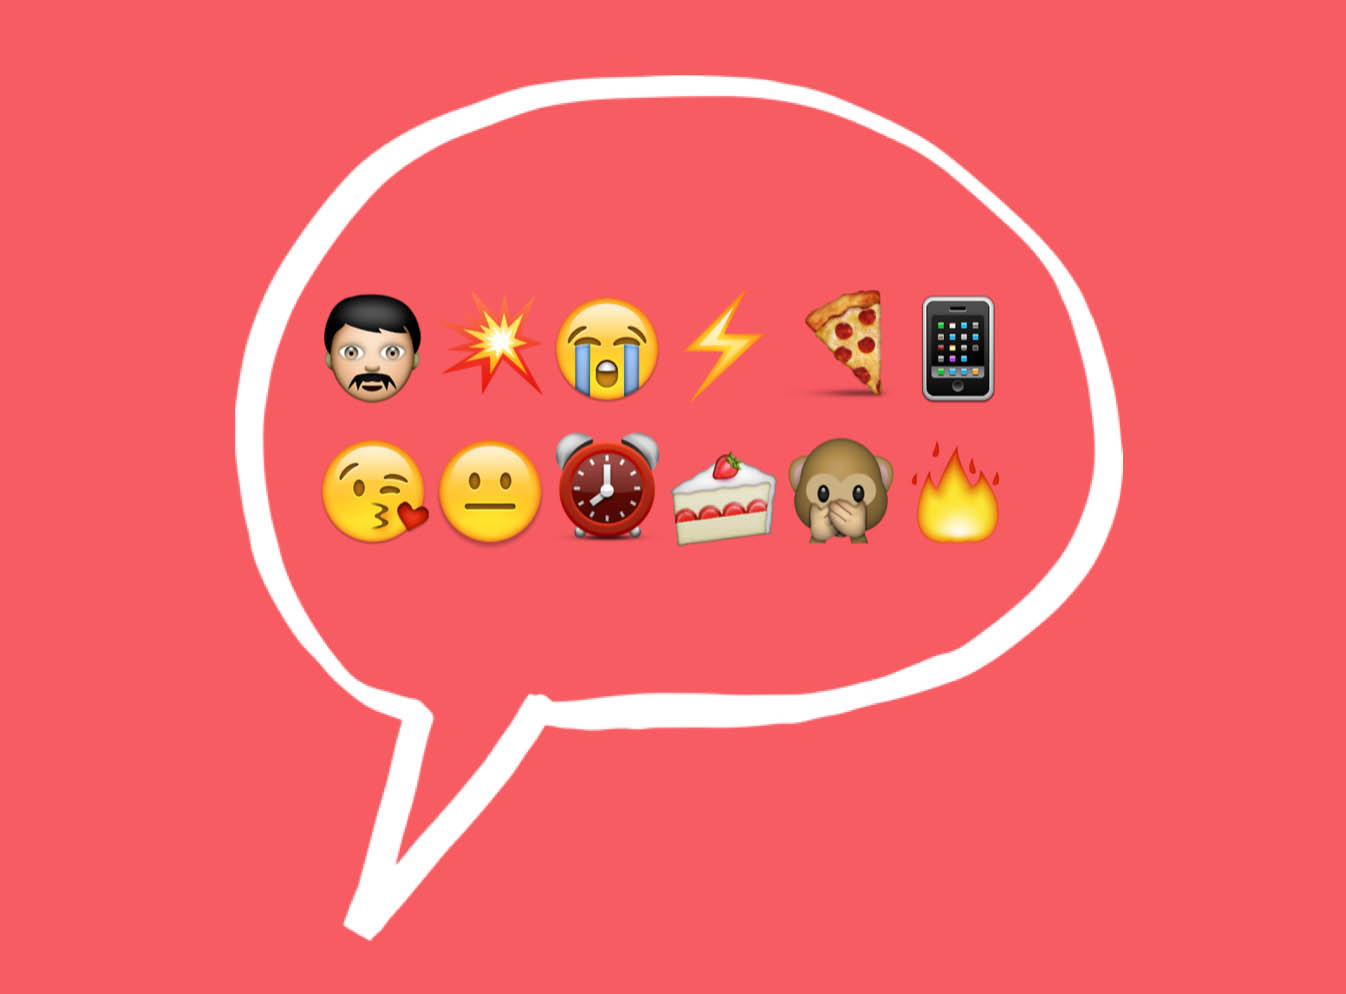 Thought bubble with emoji icons